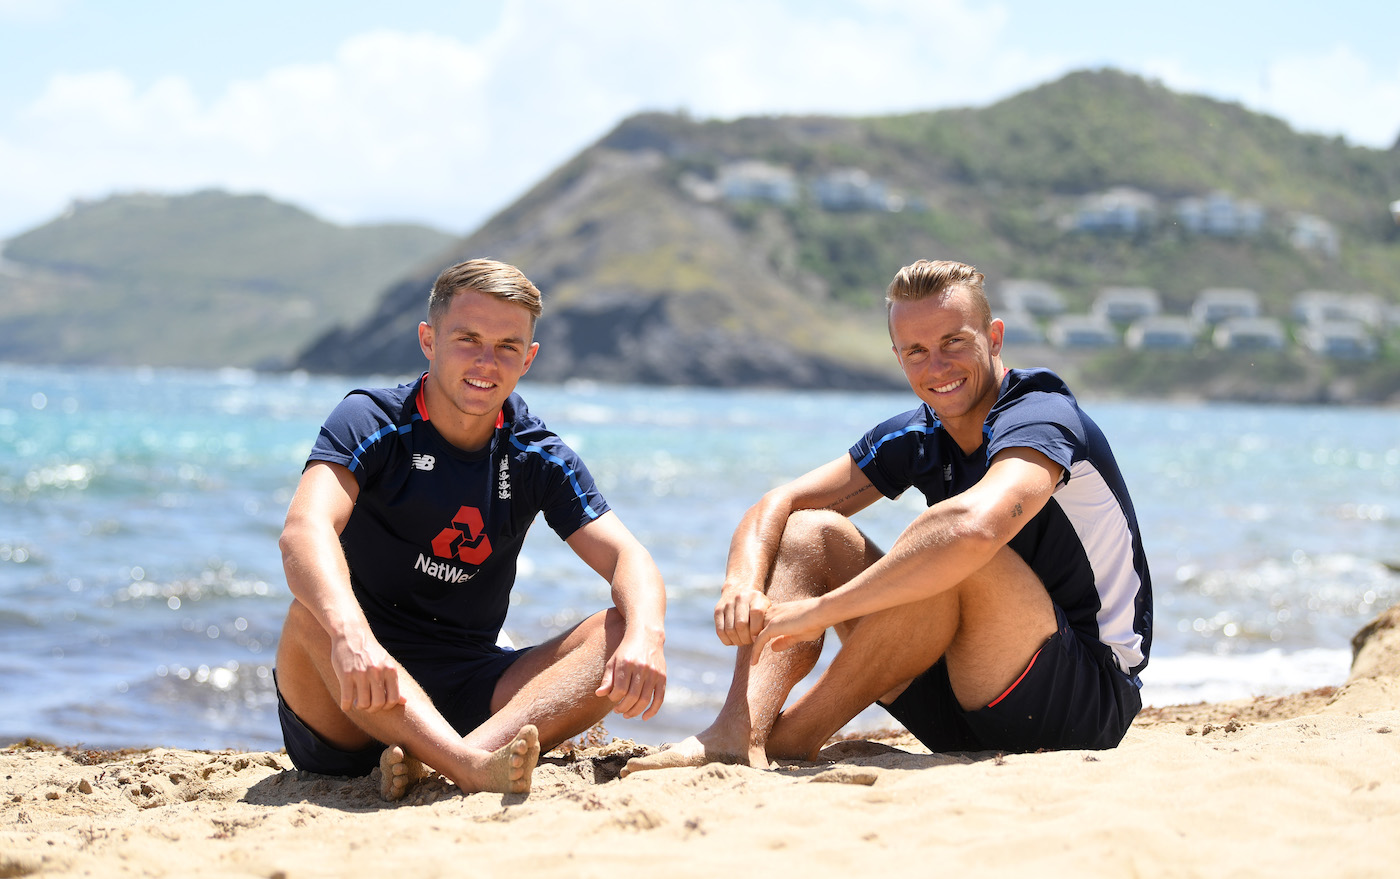 Sam and Tom Curran pose for a portrait on the beach